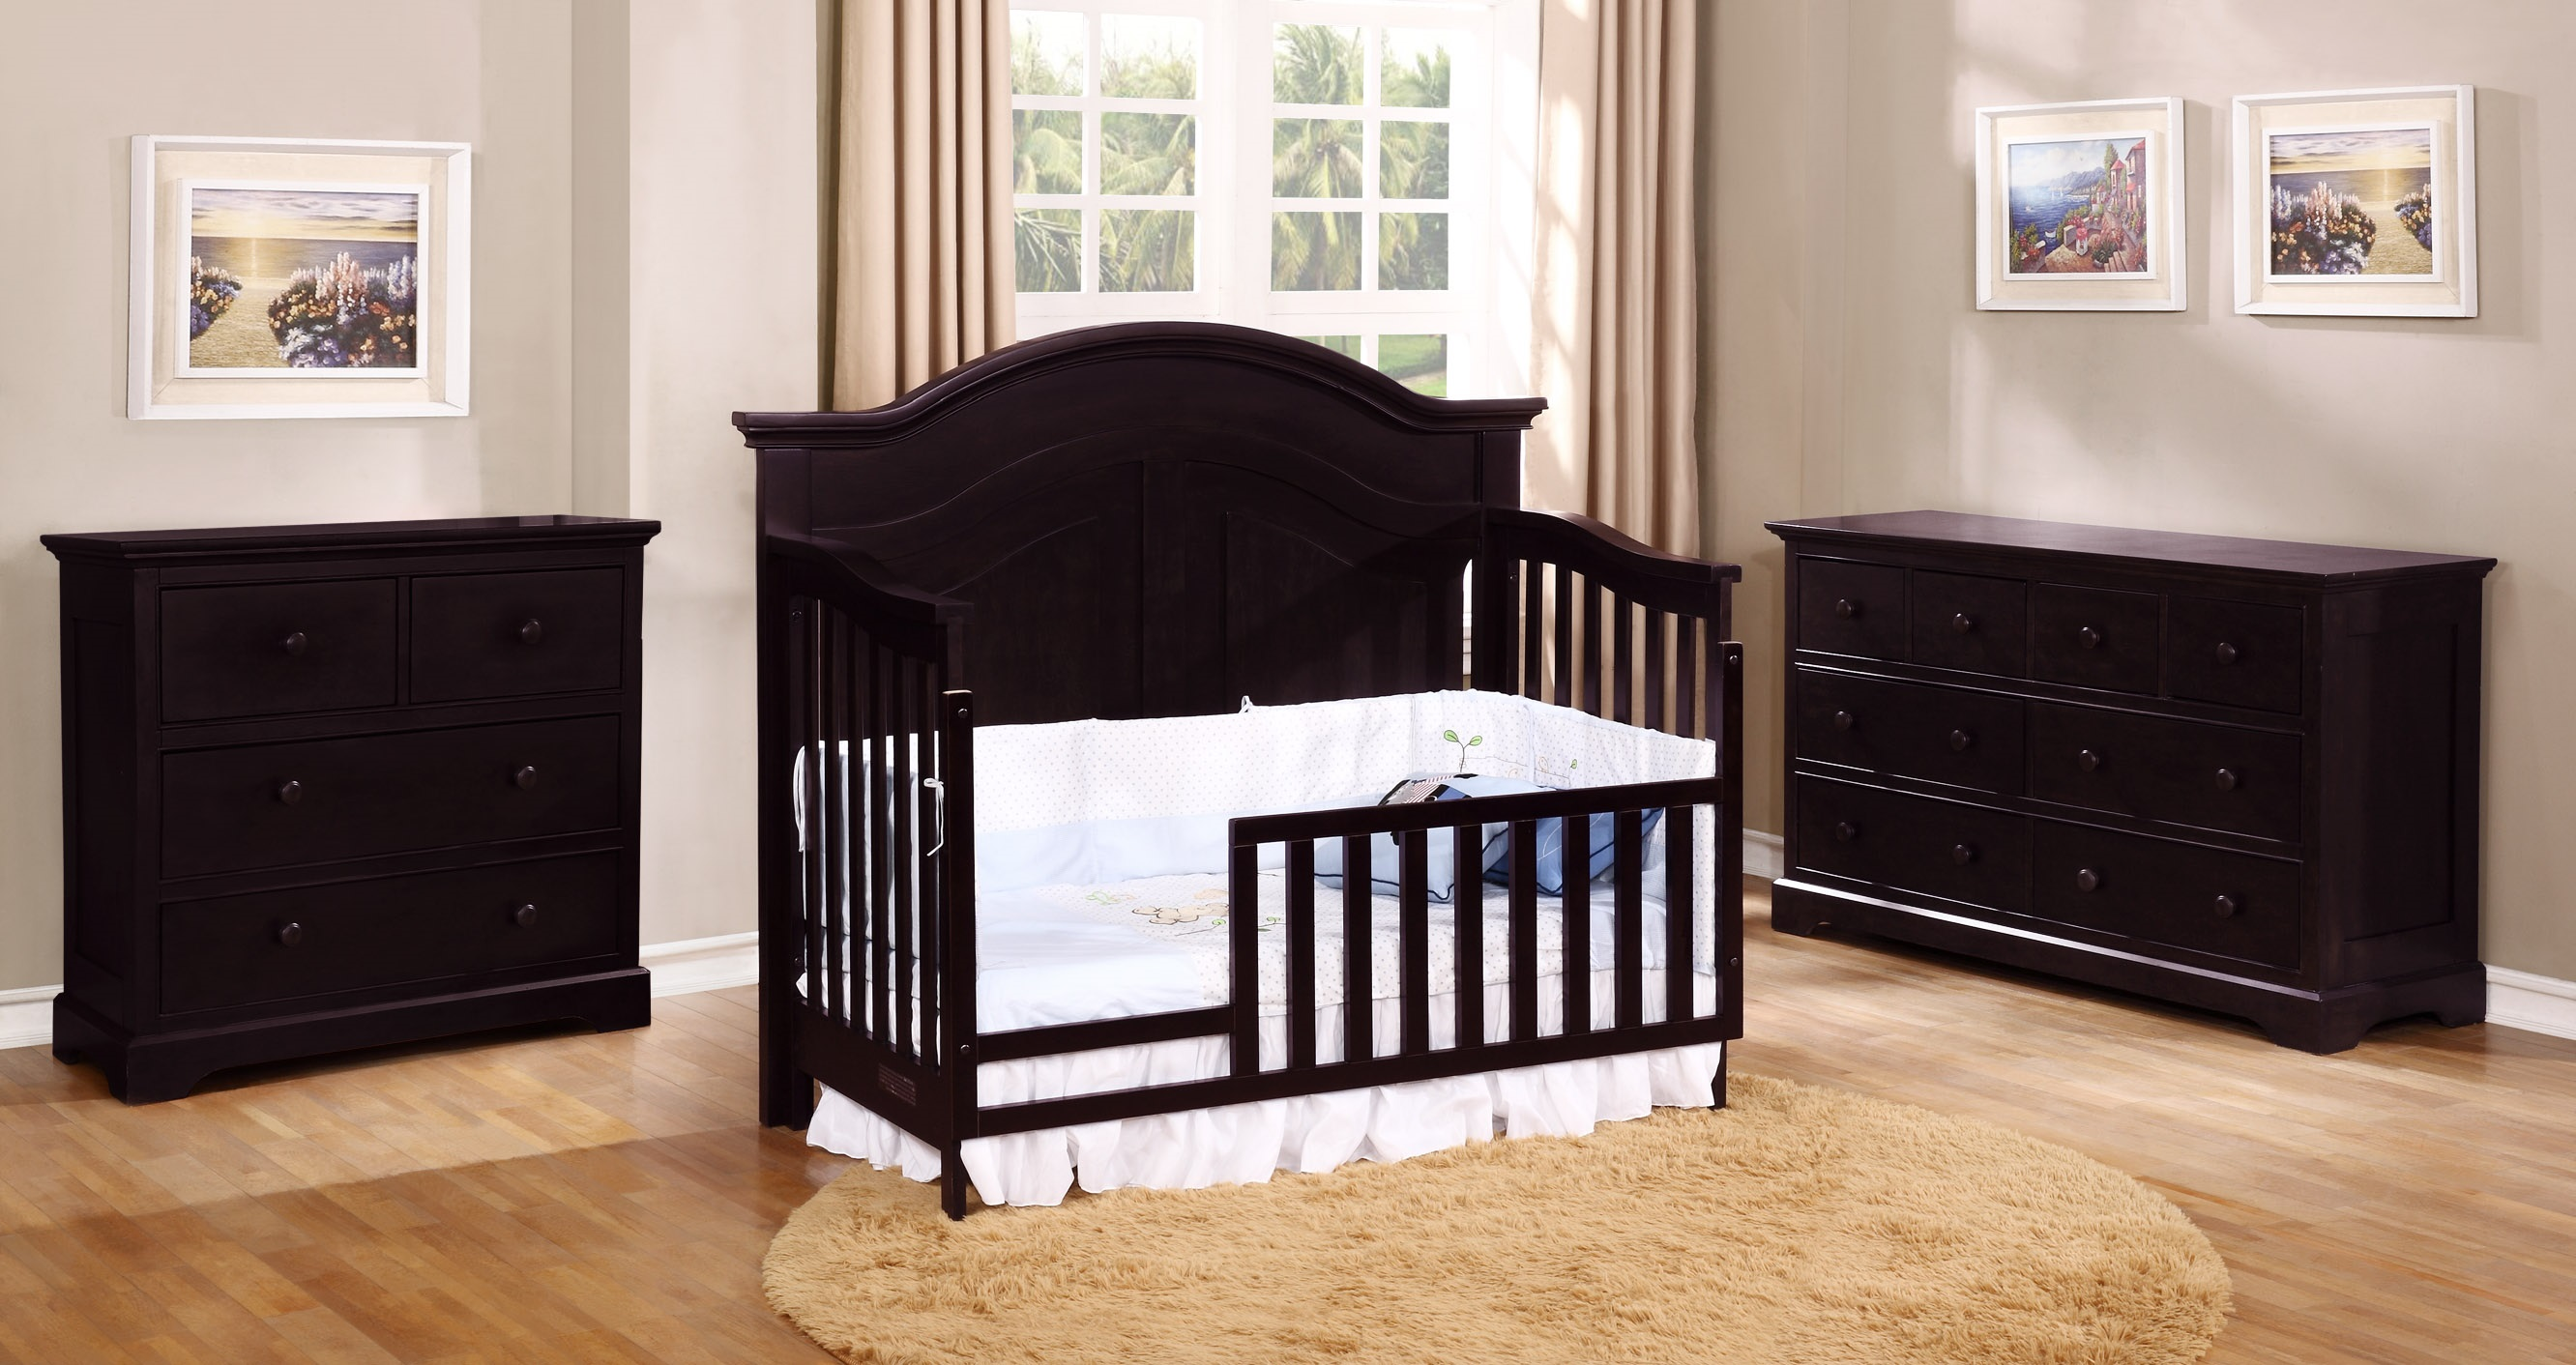 Waterford Curved Panel Toddler Bed Conversion Kit with Waterford Collection Espresso